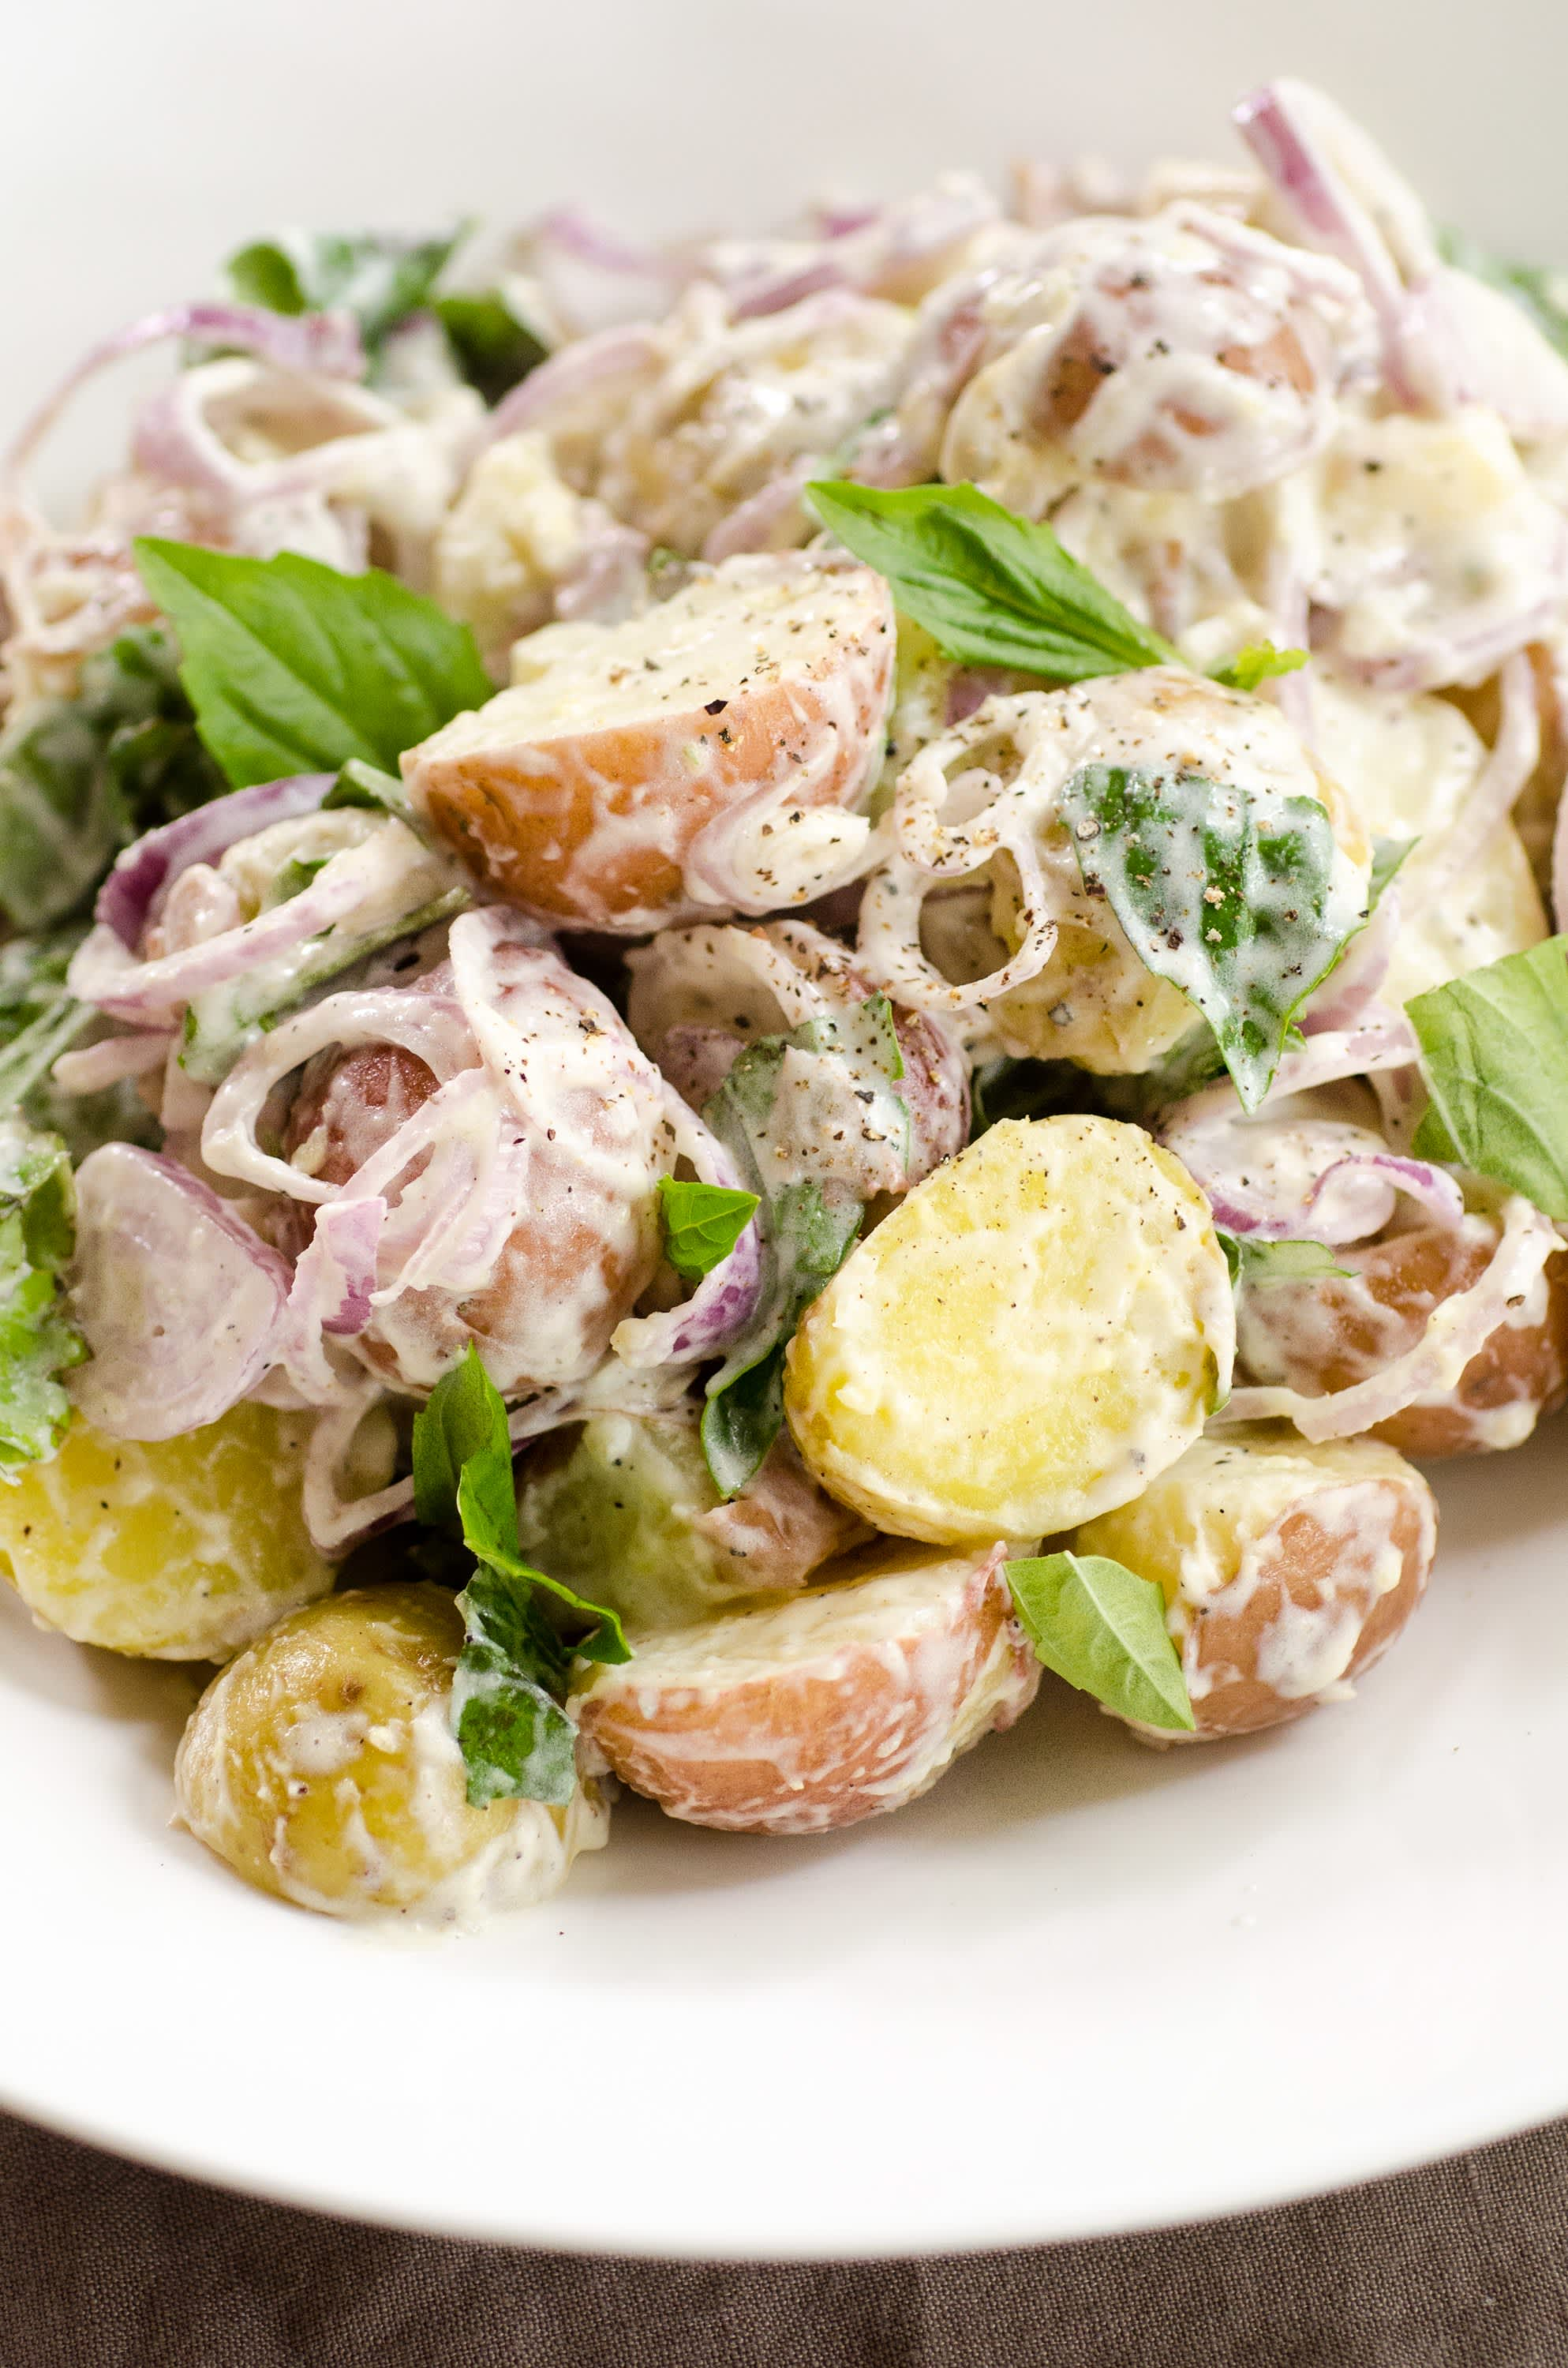 Mixed new potato salad with basil and shallots